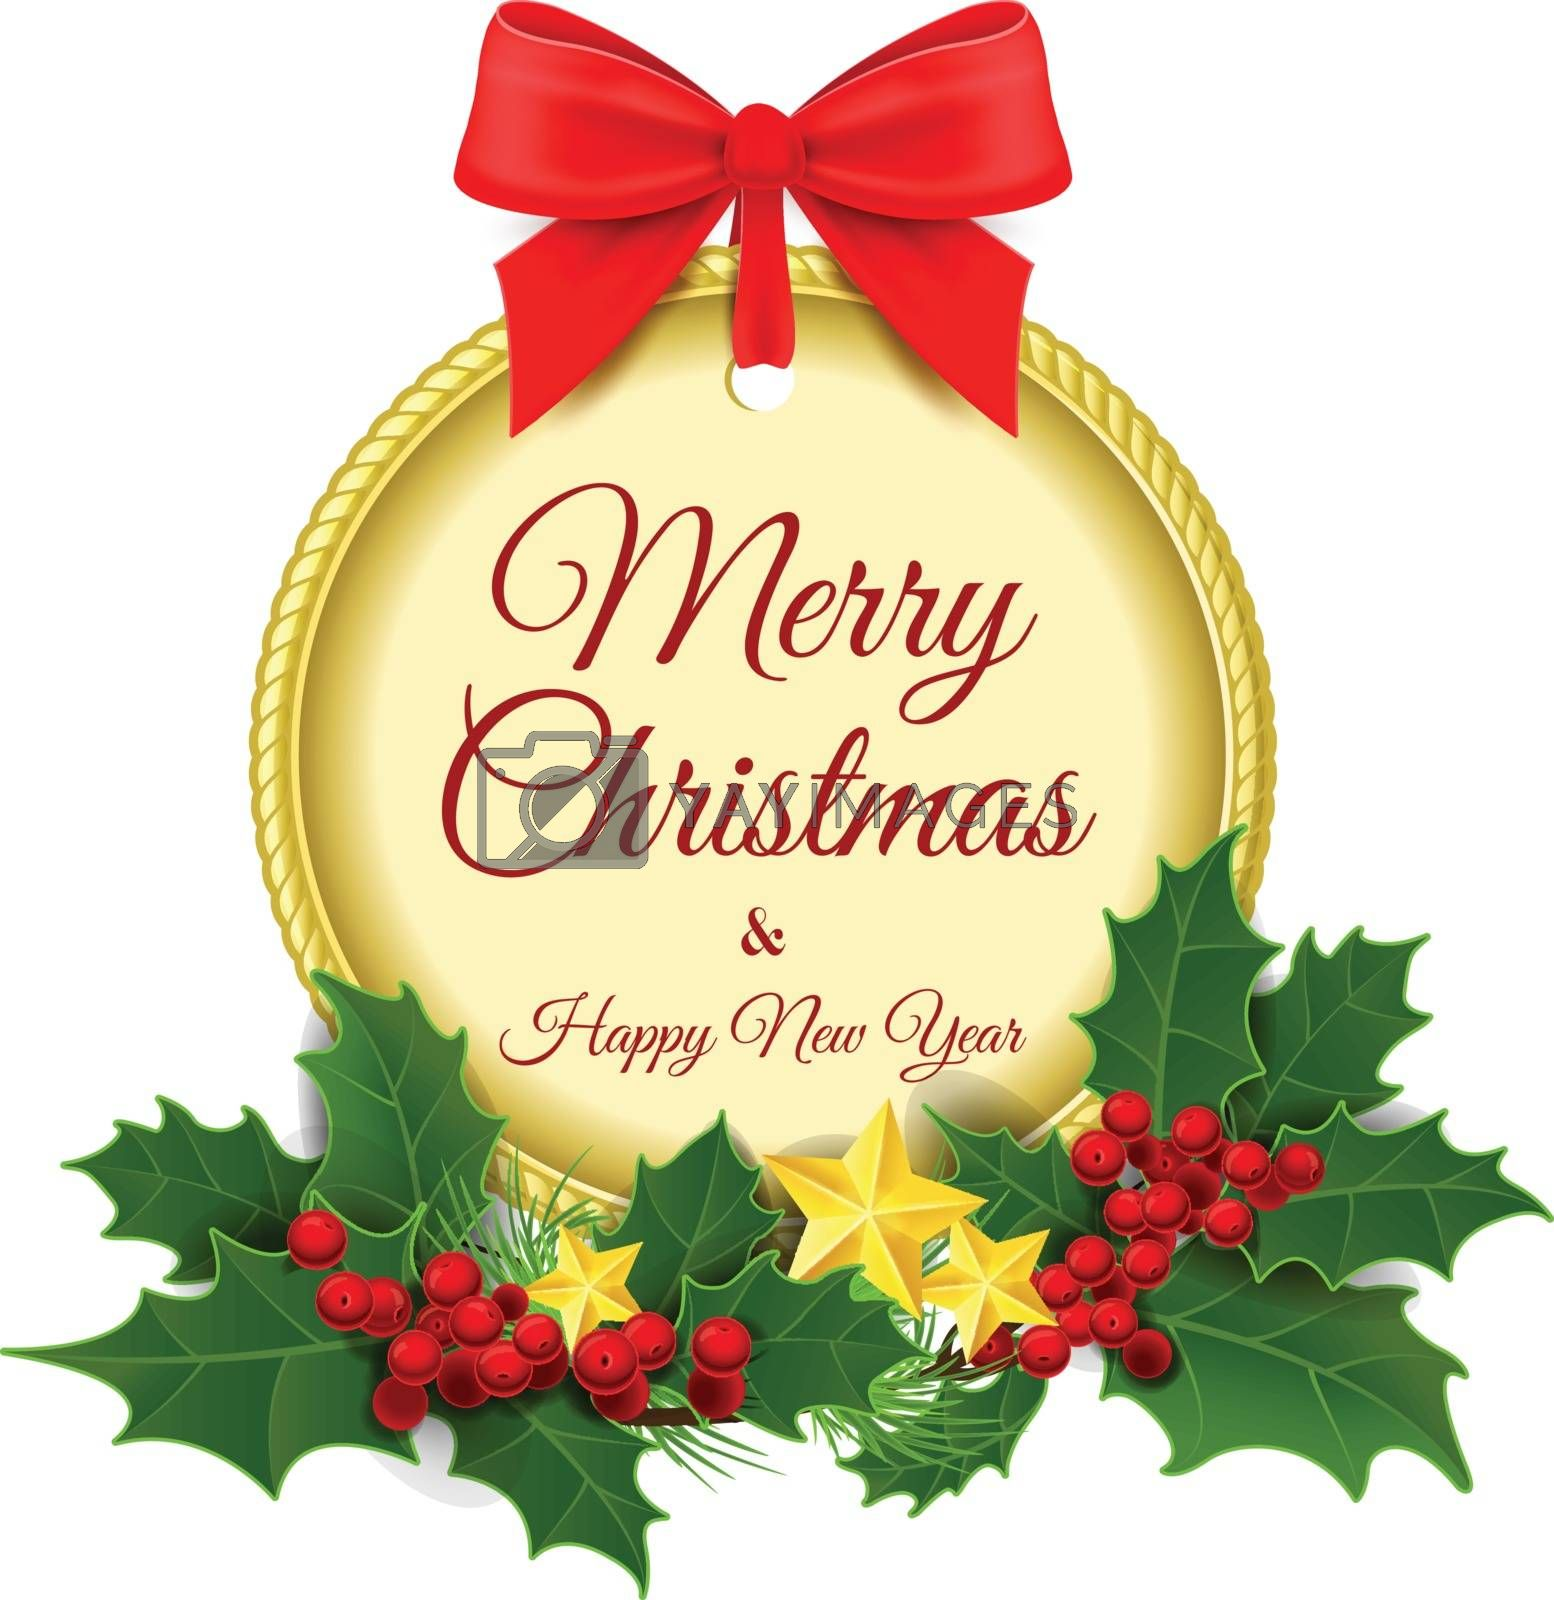 Vector illustration. Merry Christmas and a Happy New Year. Gold emblem, medal isolated on a white background with a garland of holly with Christmas gold ornaments. Gold medal. Christmas background. 2016